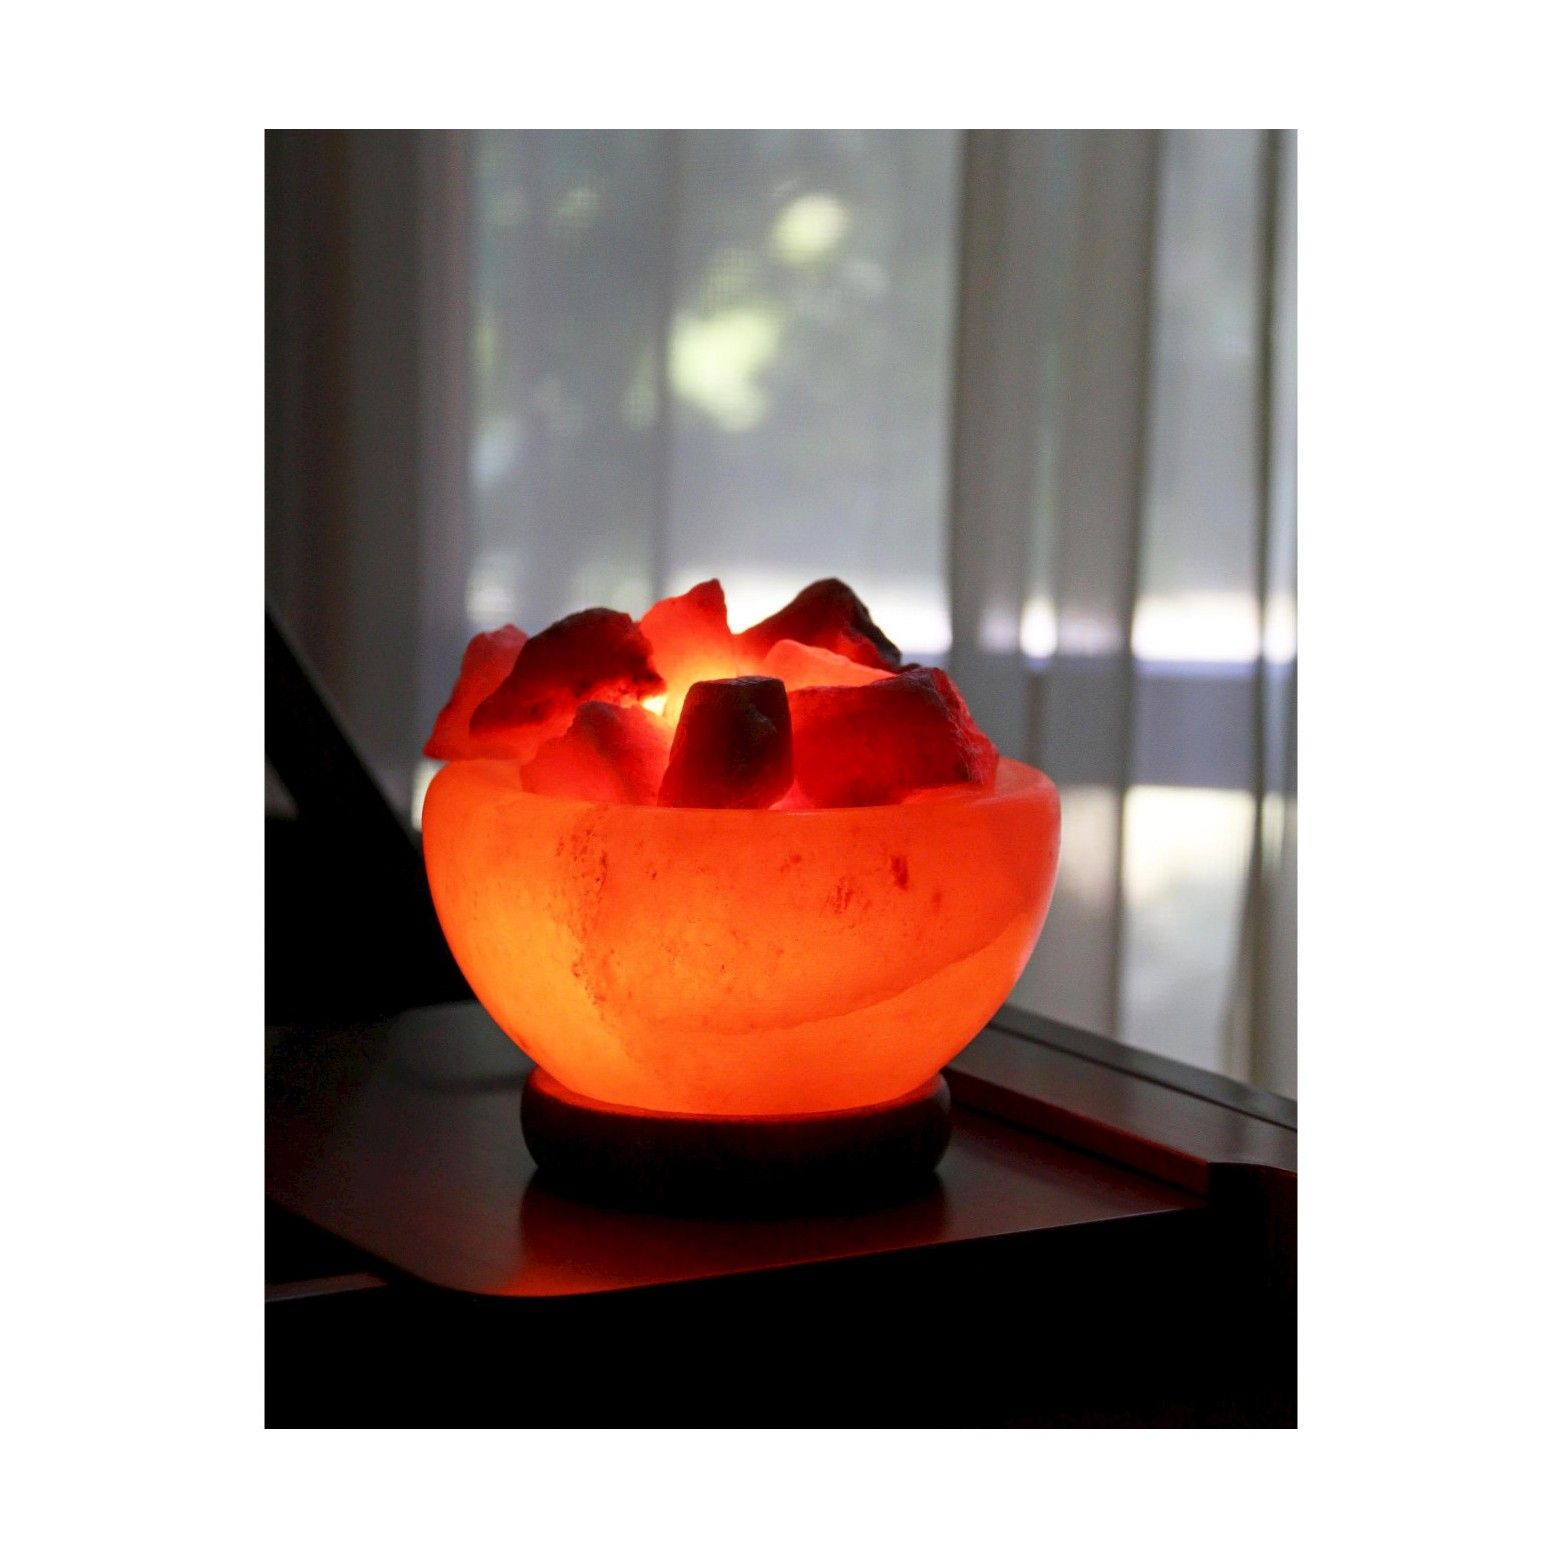 Salt Lamp Target Alluring Accentuationsmanhattan Comfort Himalayan Salt Lamp Fire Bowl Design Inspiration